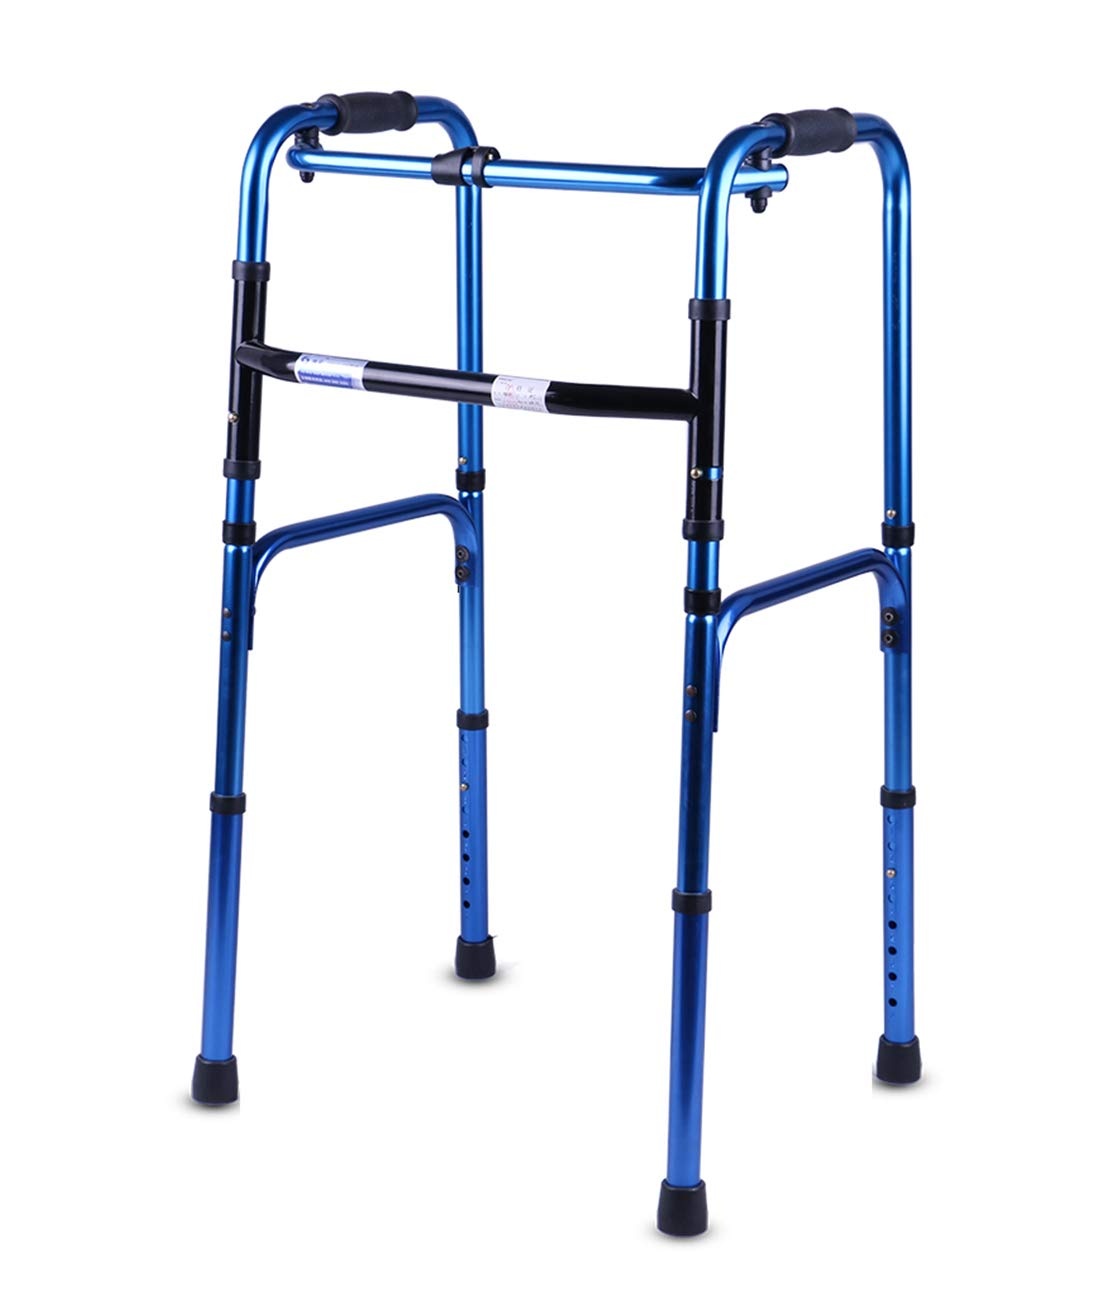 Amazon.com: Mocr - Caminero plegable para ancianos con ...